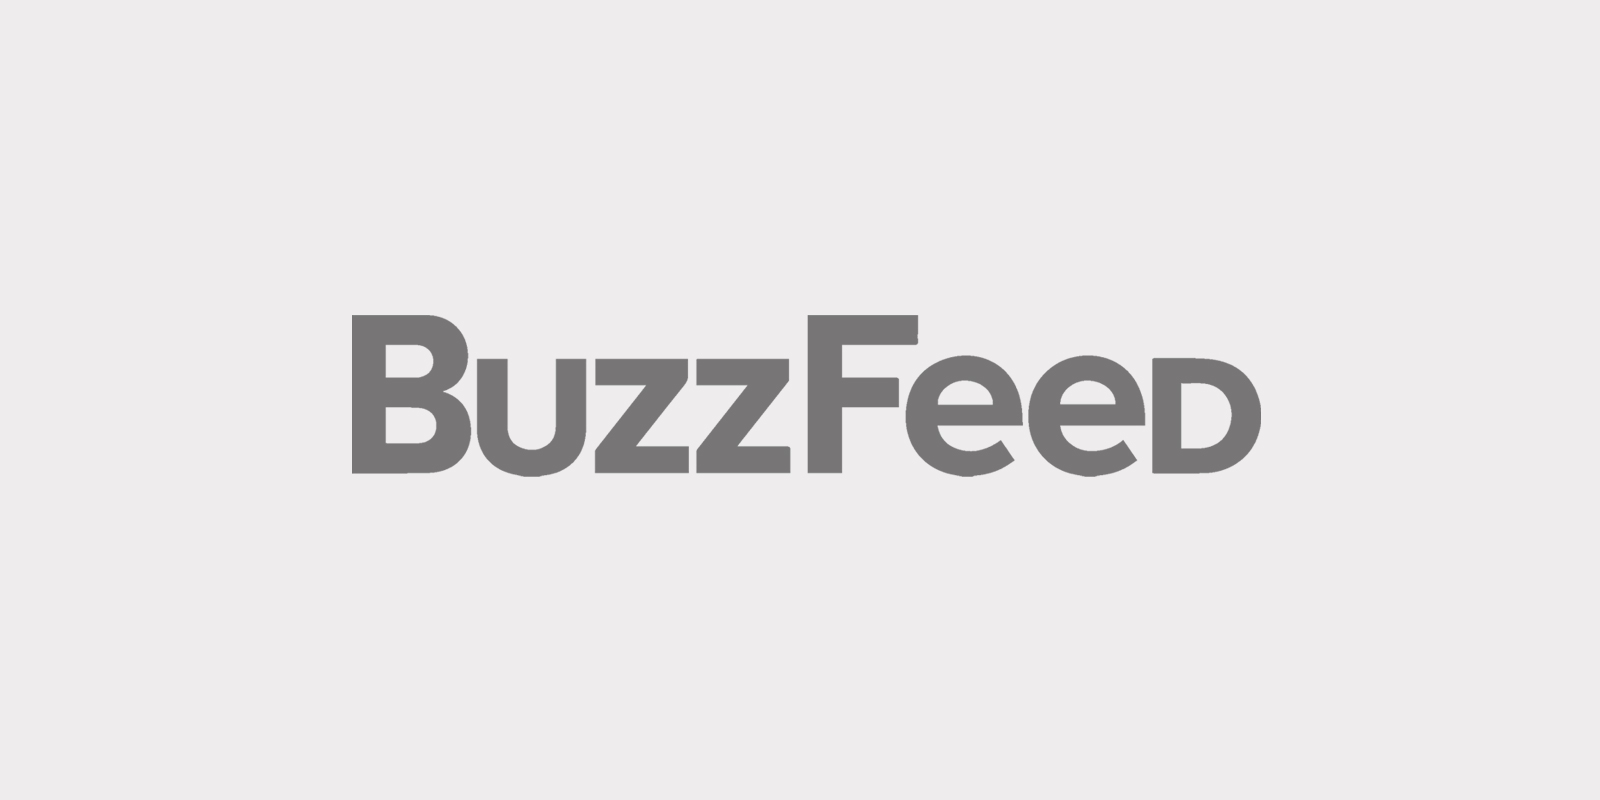 BTL_Website_Logos_BuzzFeed_Grey.jpg